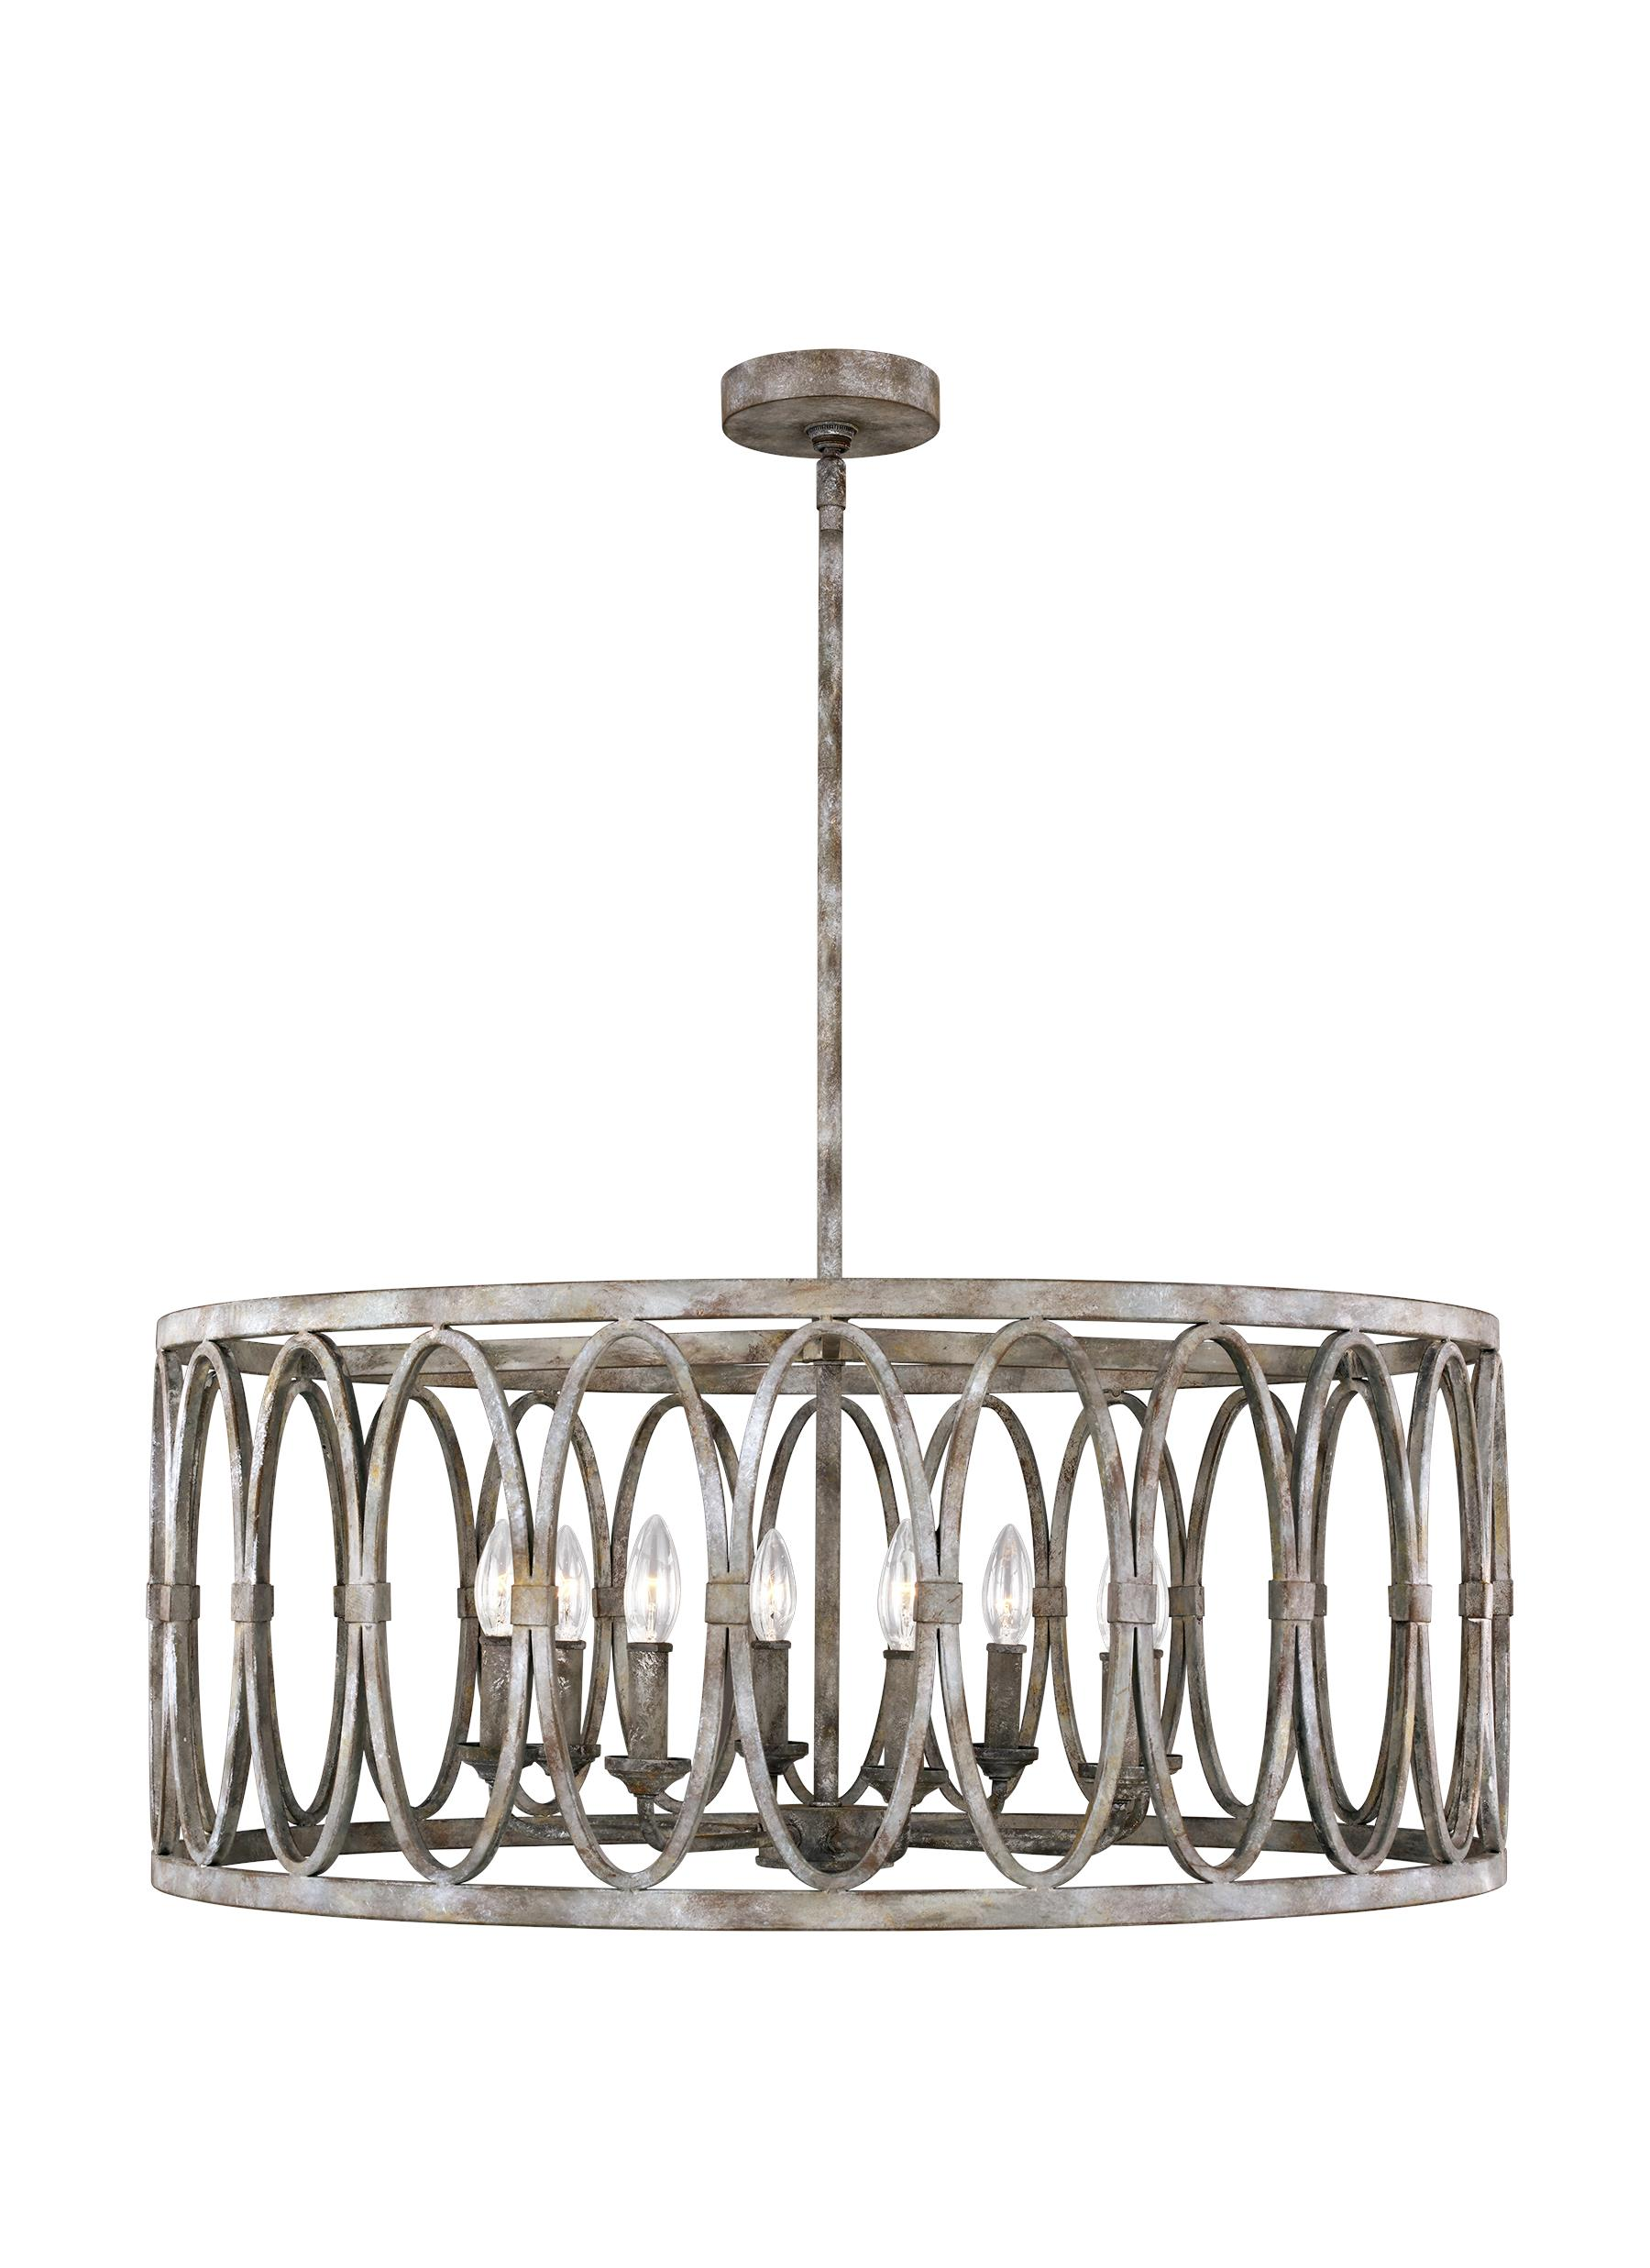 Feiss F3351 8da Patrice 8 Light Chandelier Luxury Lighting Direct